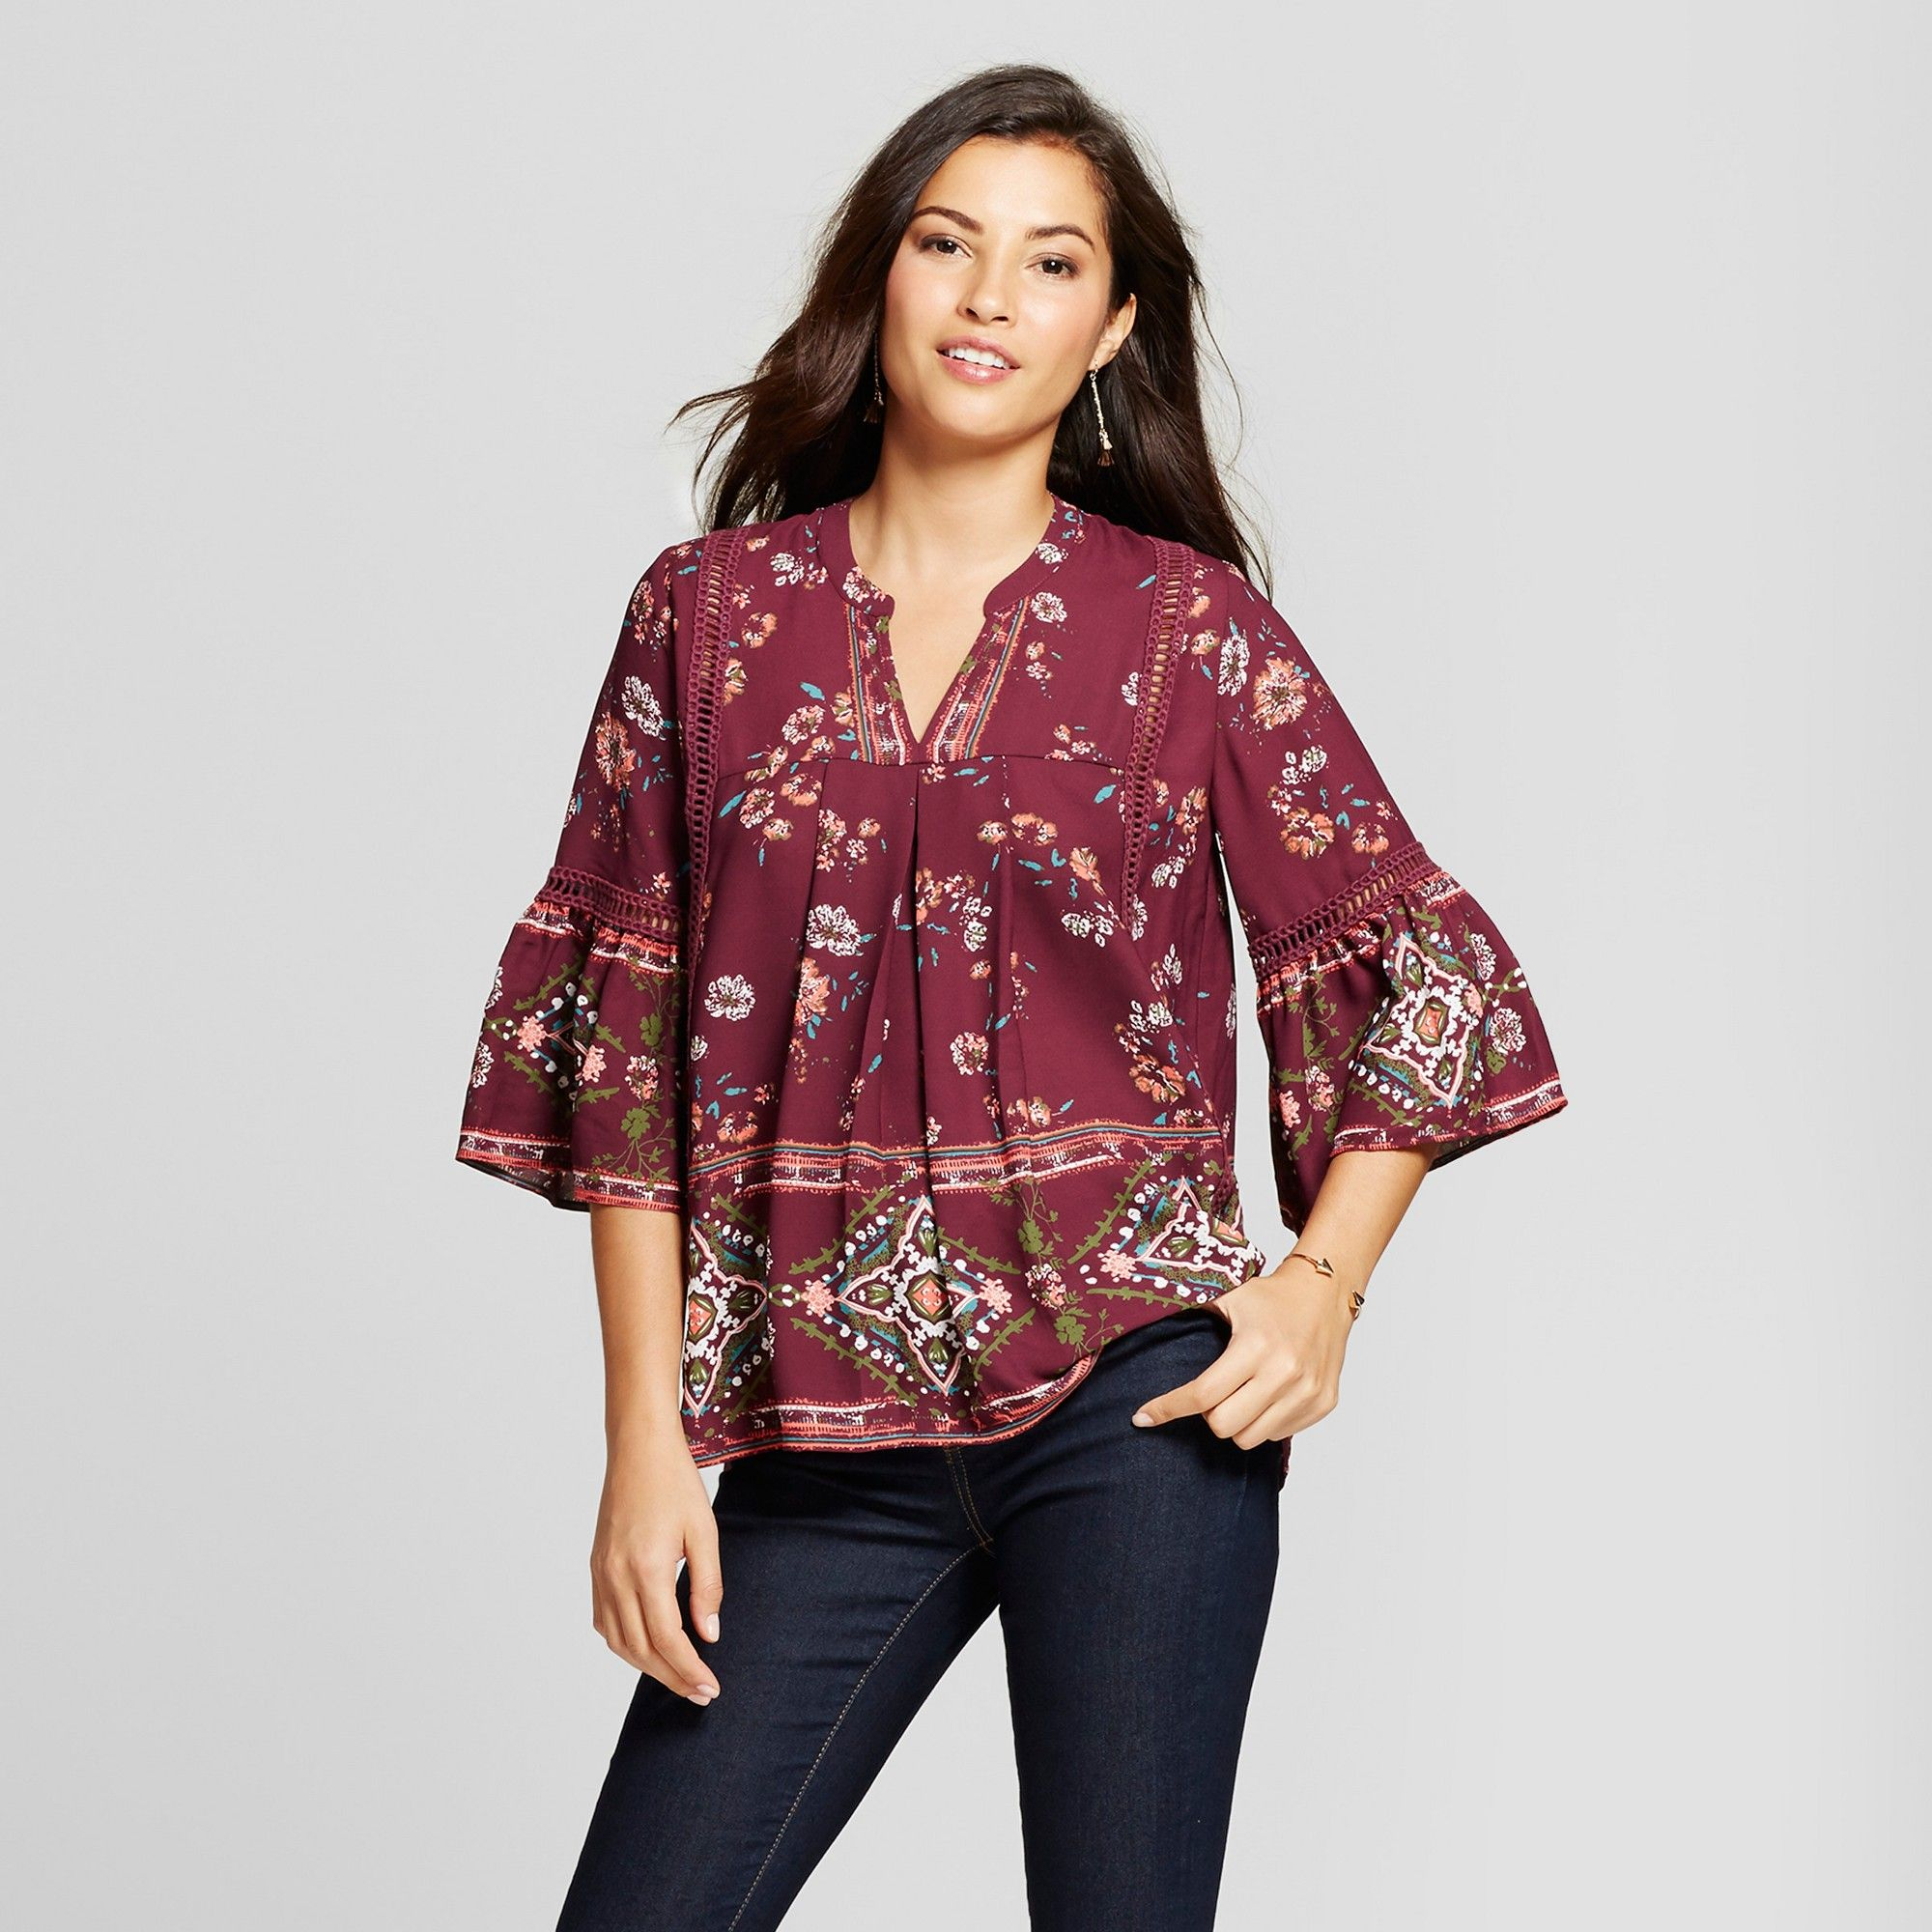 7a7a23dd9105b Women's Printed Bell Sleeve Top - Knox Rose Merlot Xxl, Purple ...